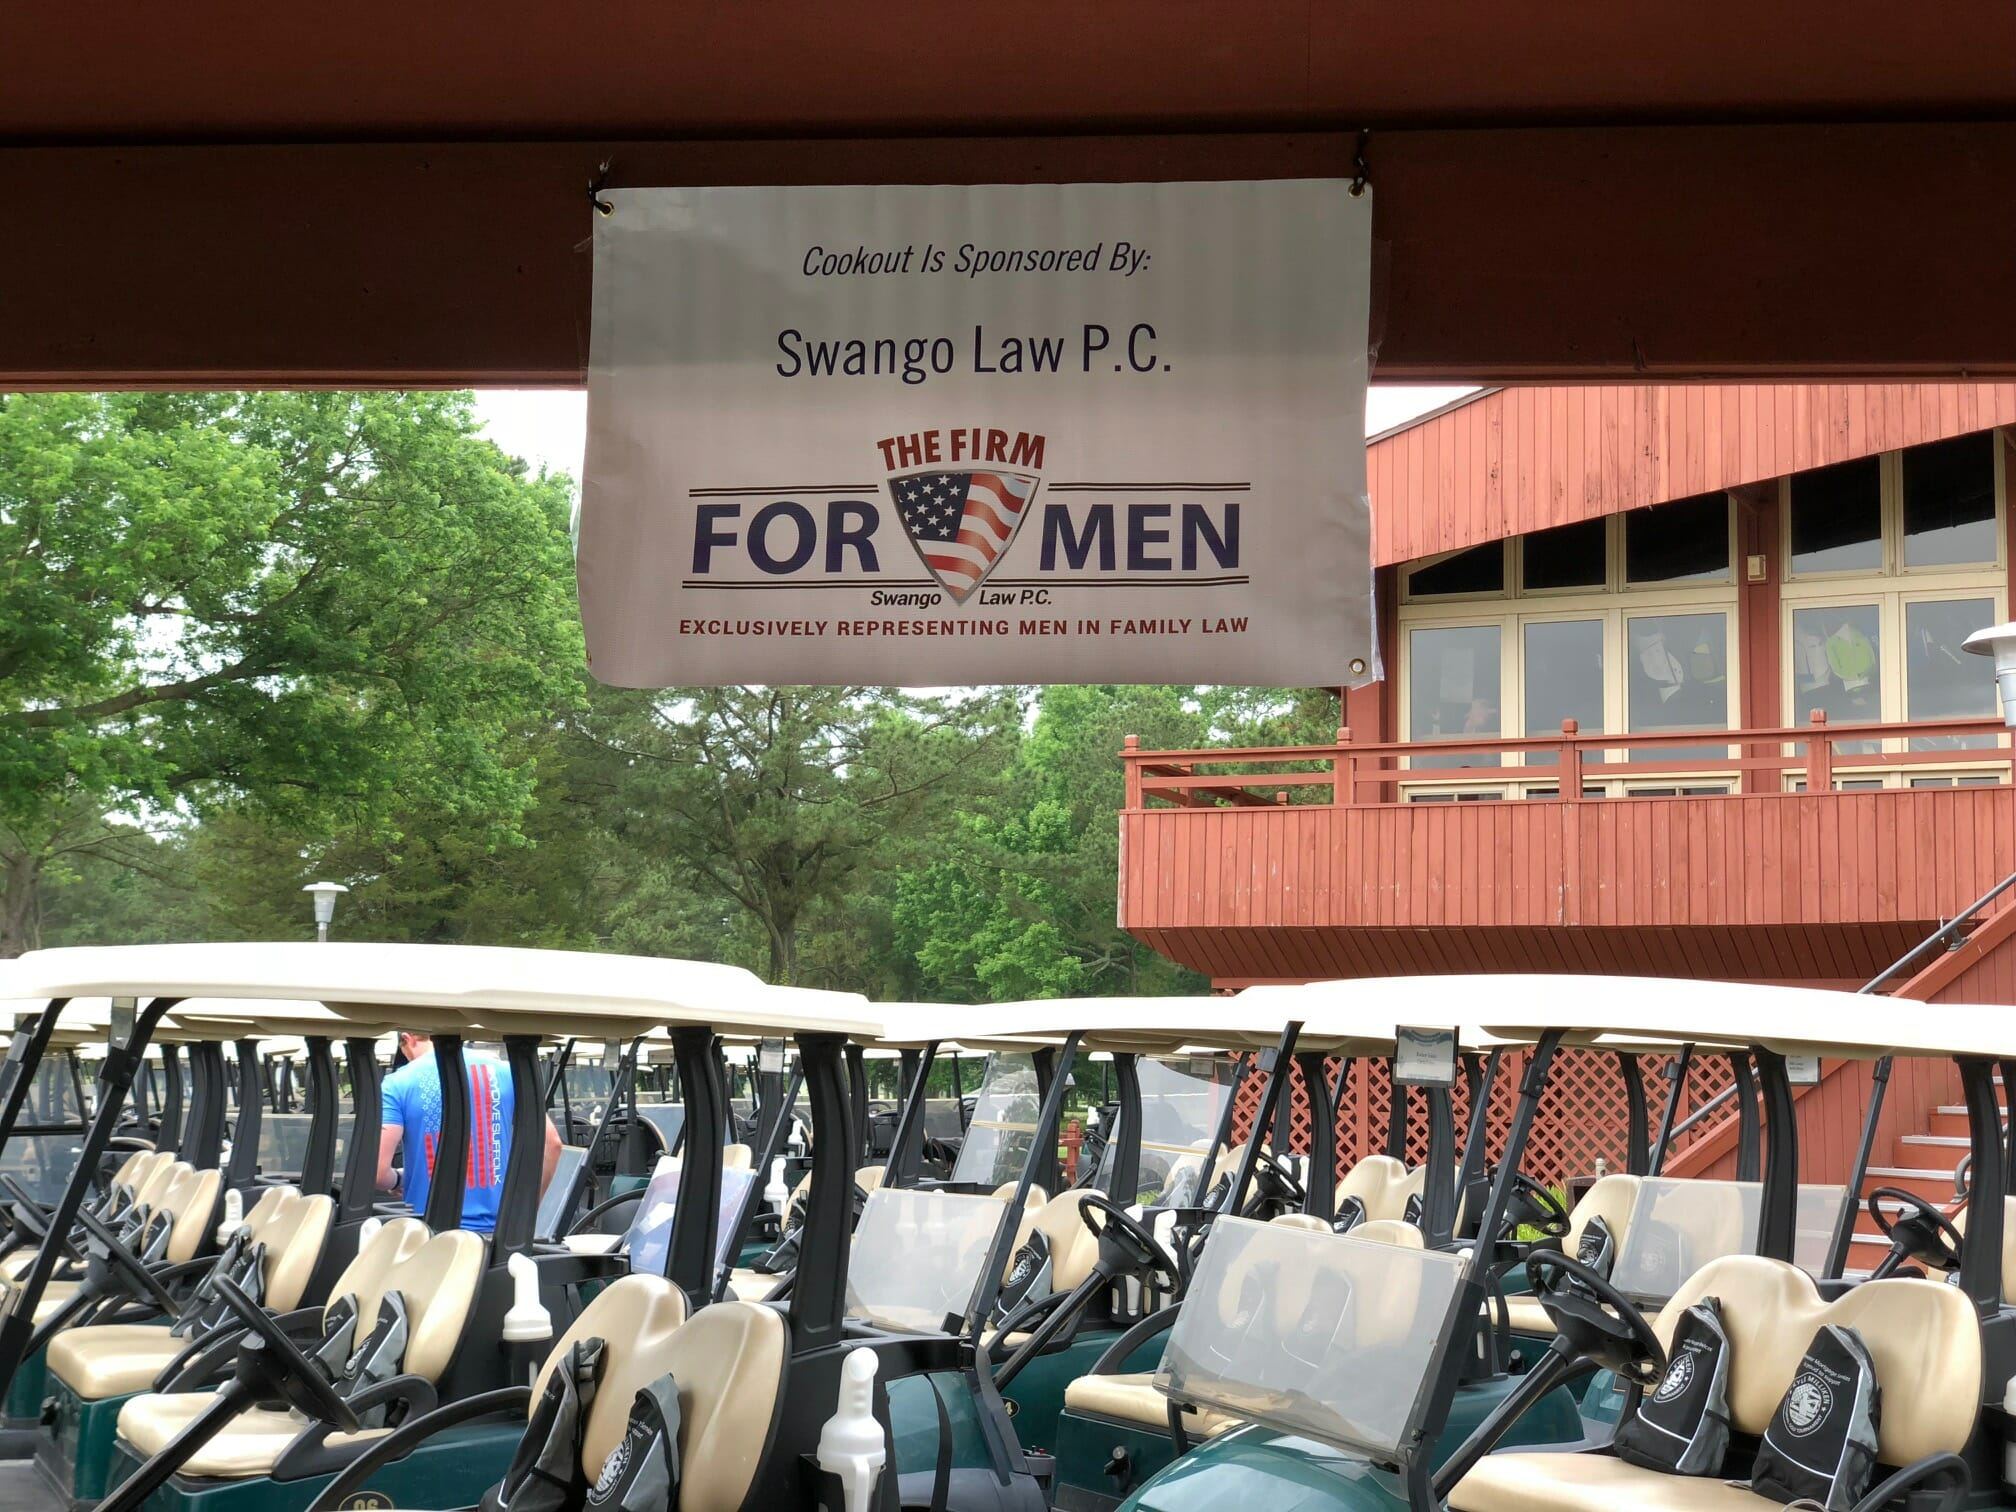 The Firm For Men Sponsors the Kyle Milliken 2nd Annual Golf Tournament